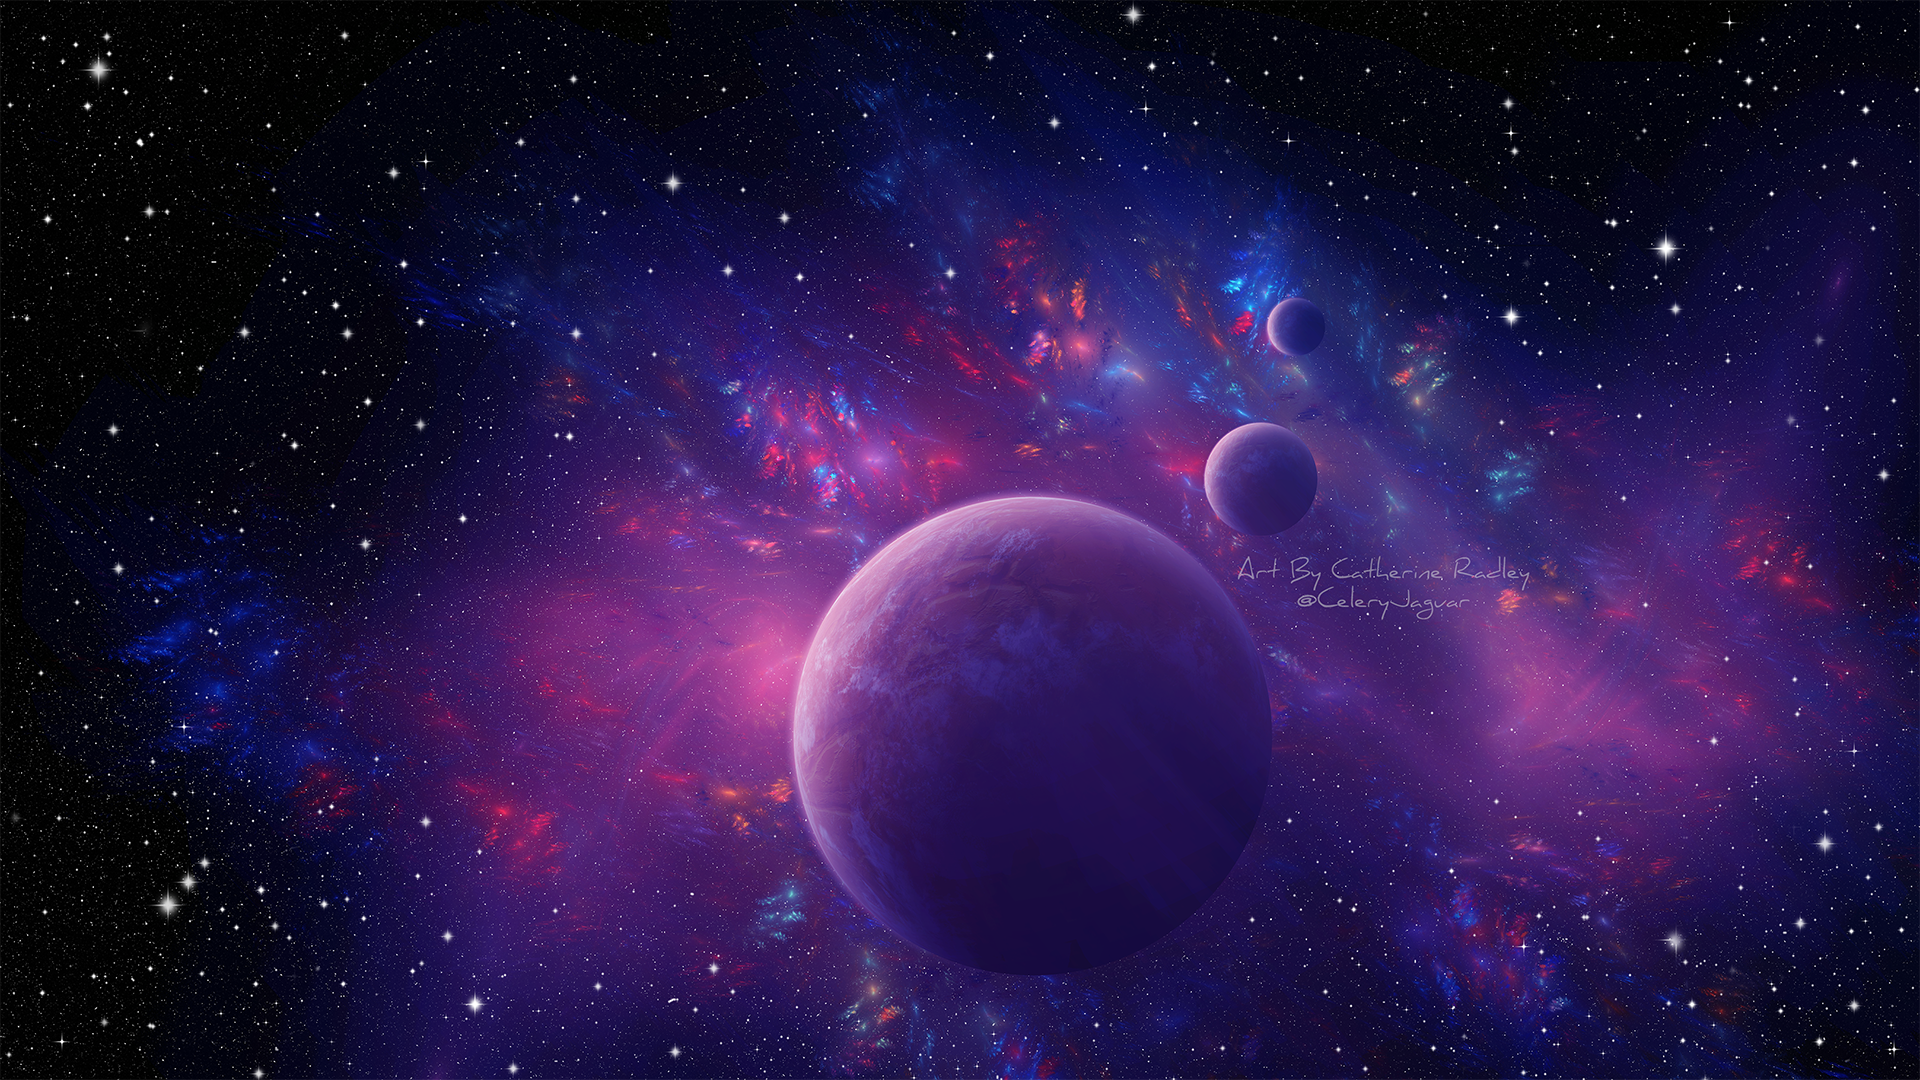 Purple And Blue Space Fondo De Pantalla Hd Fondo De